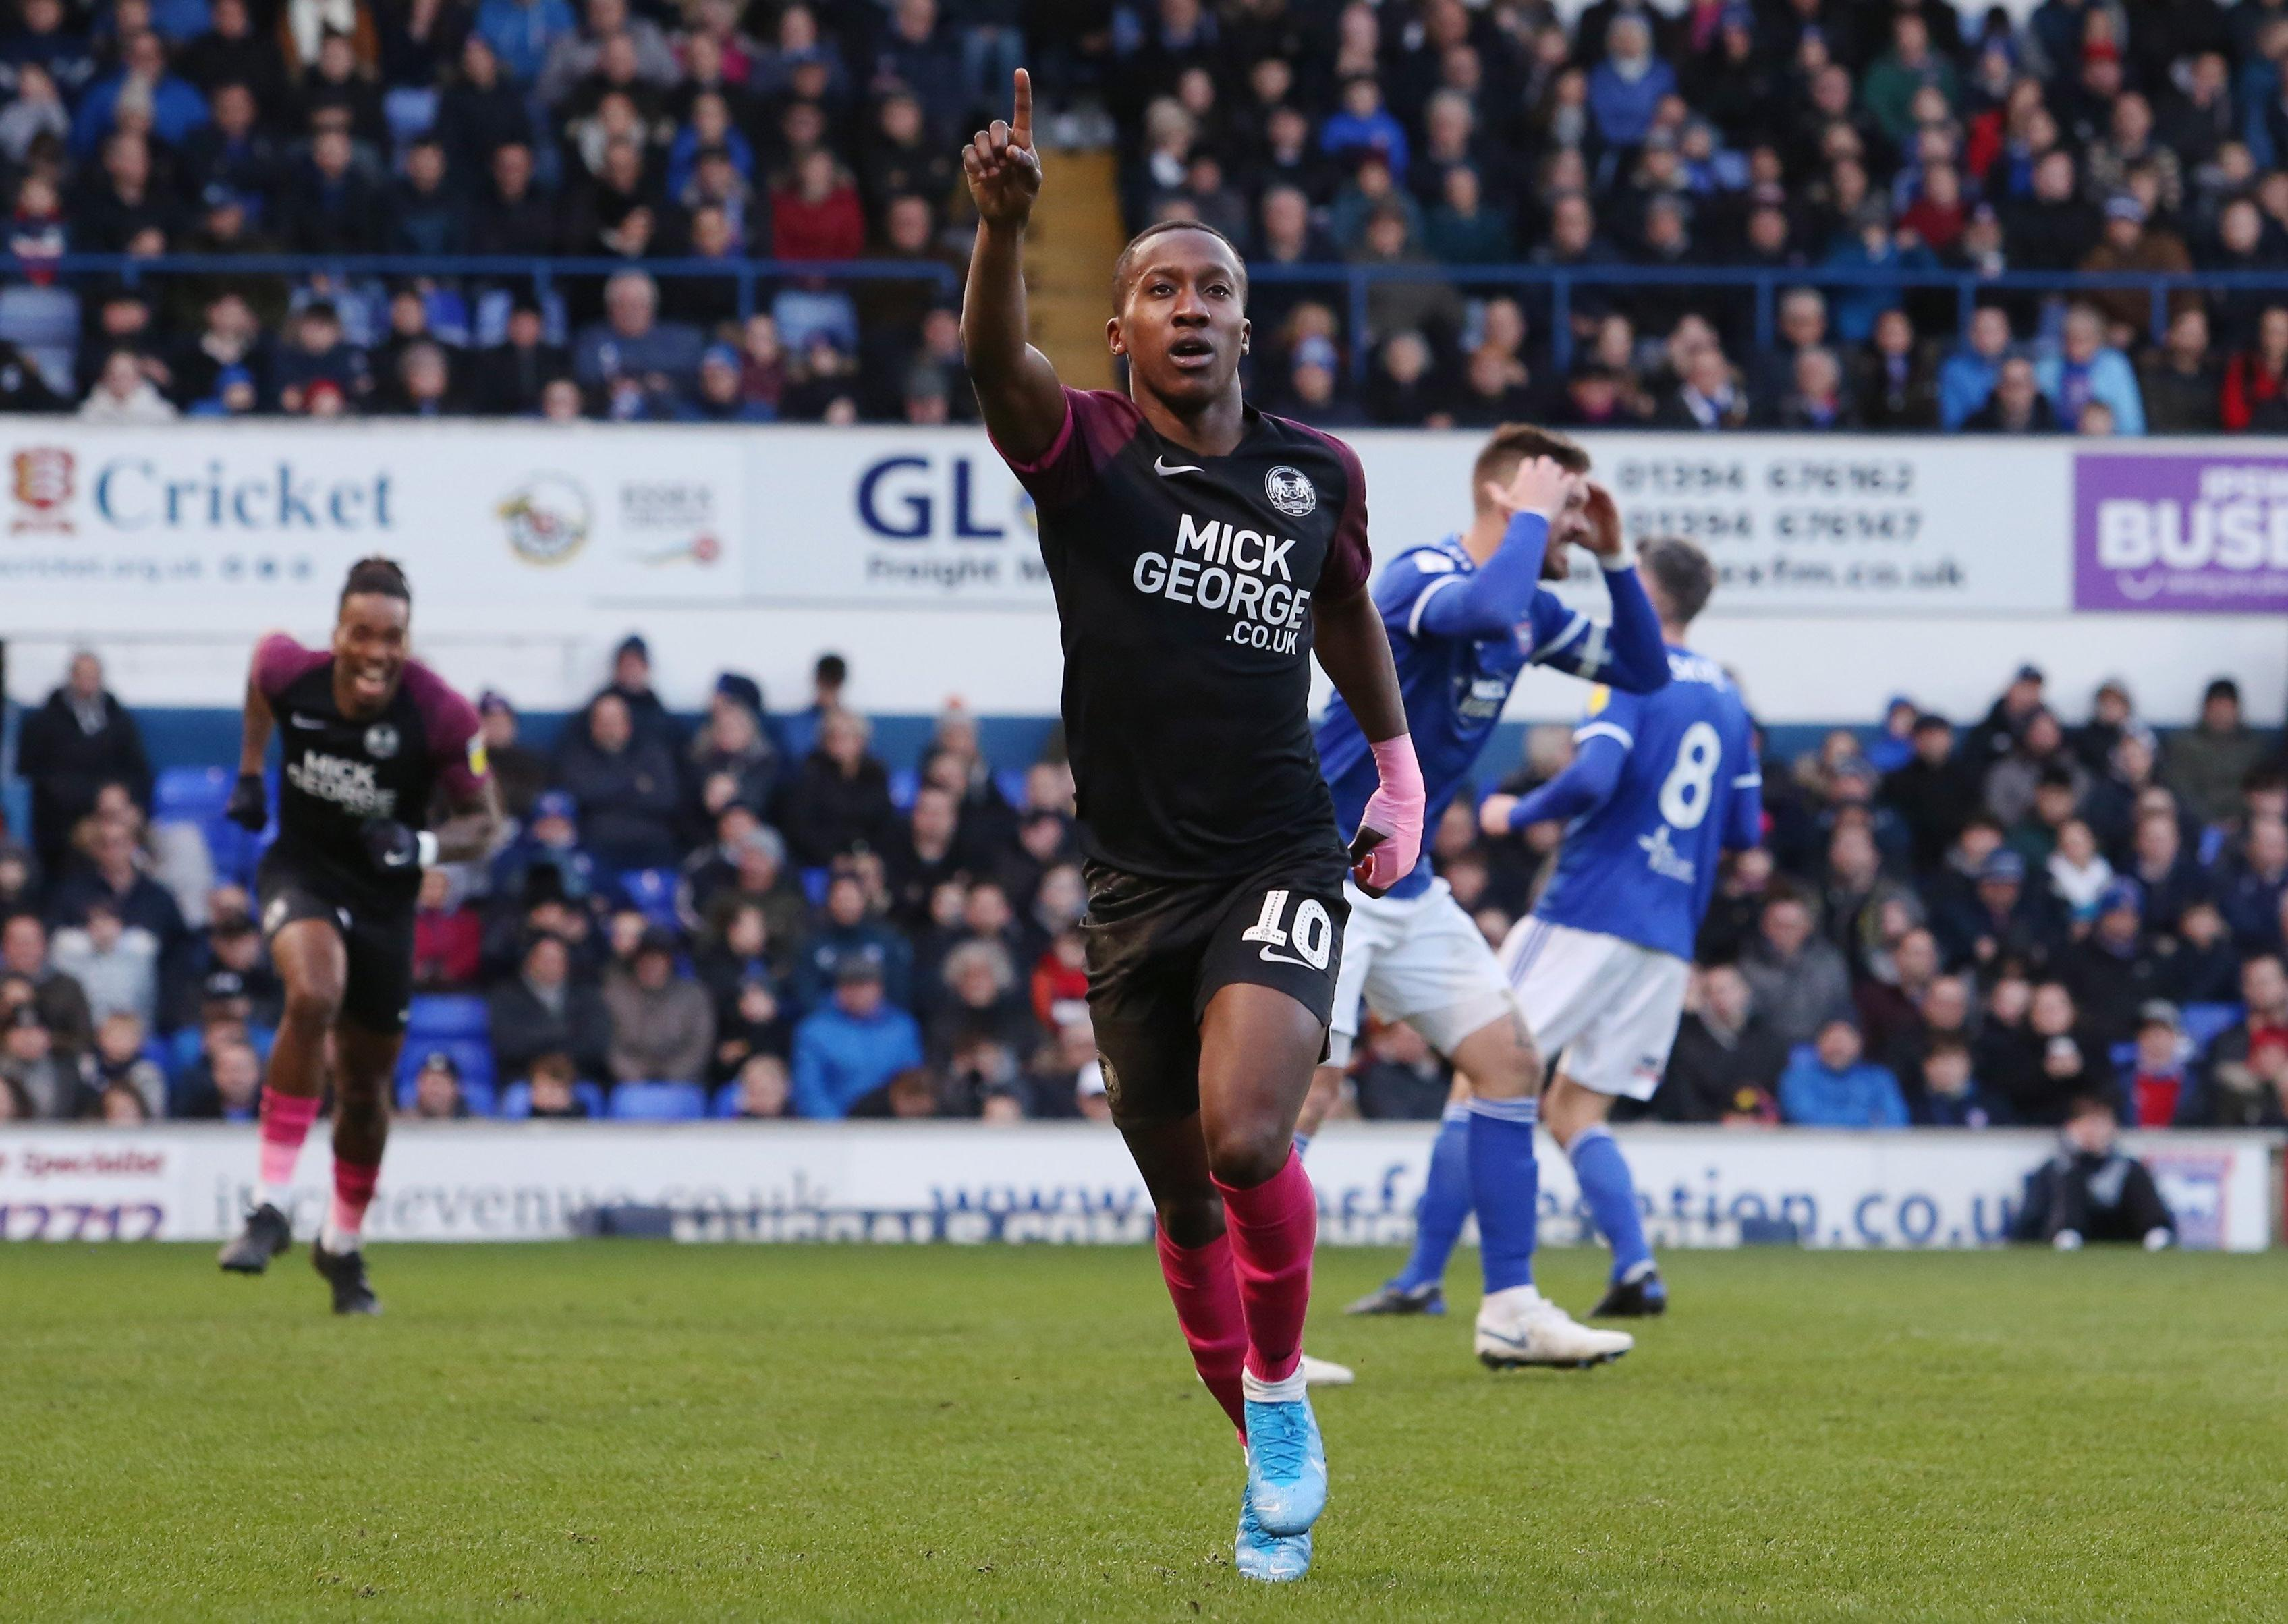 Peterborough United manager praises 'destructive' Siriki Dembele and 'savvy' Nathan Thompson as Posh prepare for another big game against promotion rivals Oxford United | Peterborough Telegraph